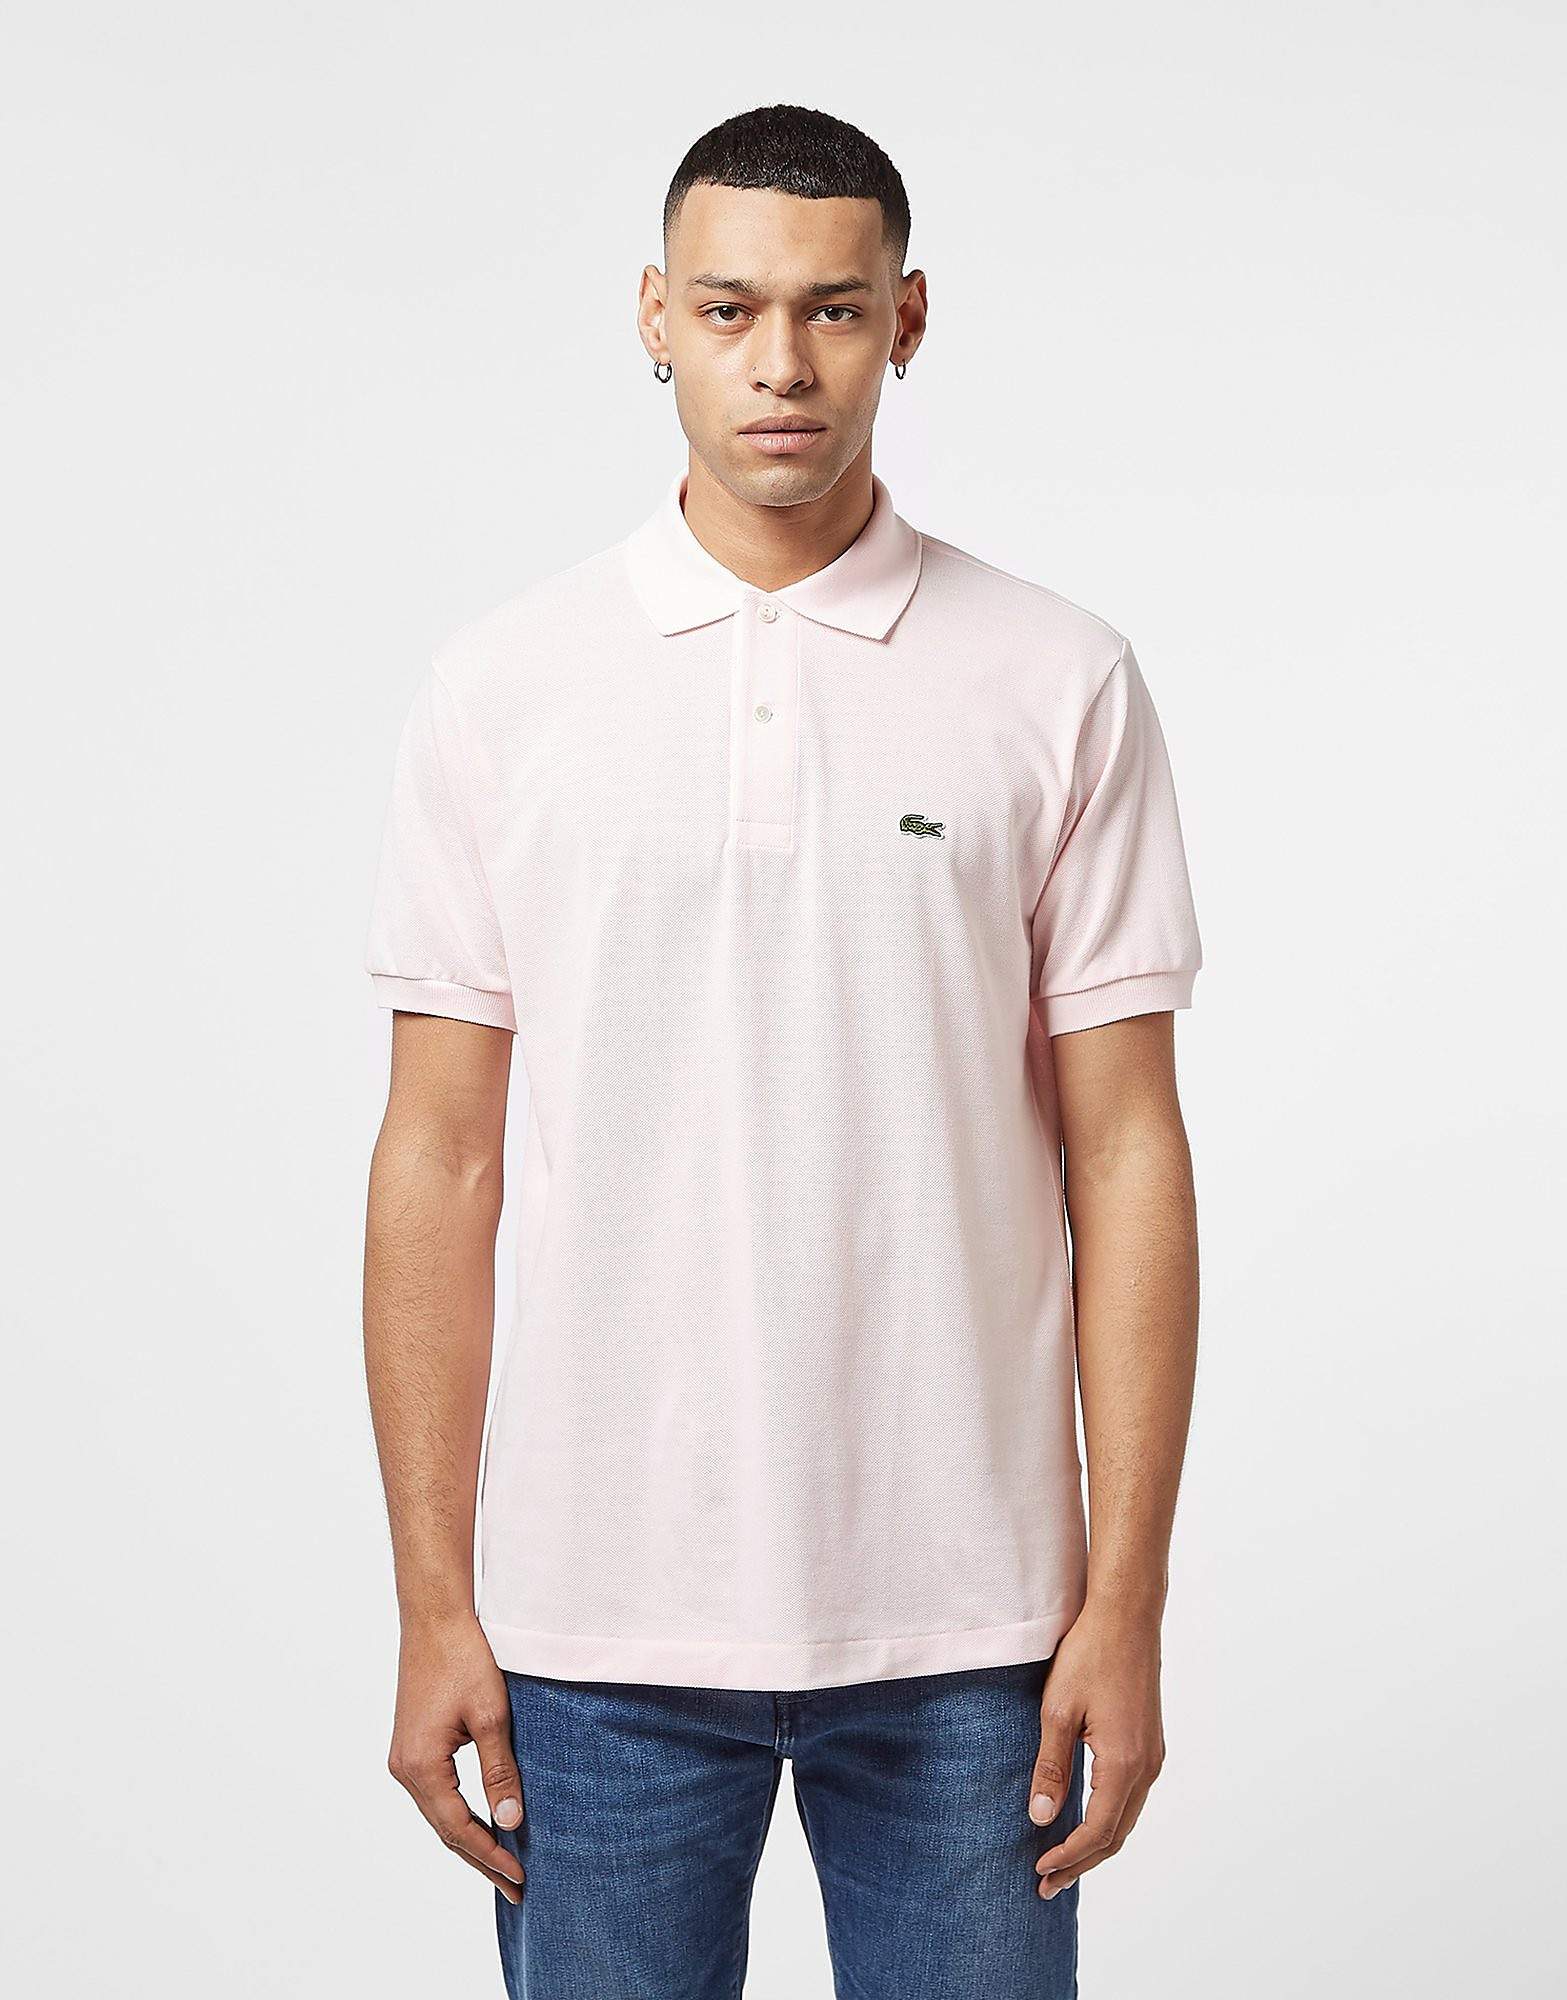 Lacoste L1212 Polo Shirt  Pink Pink